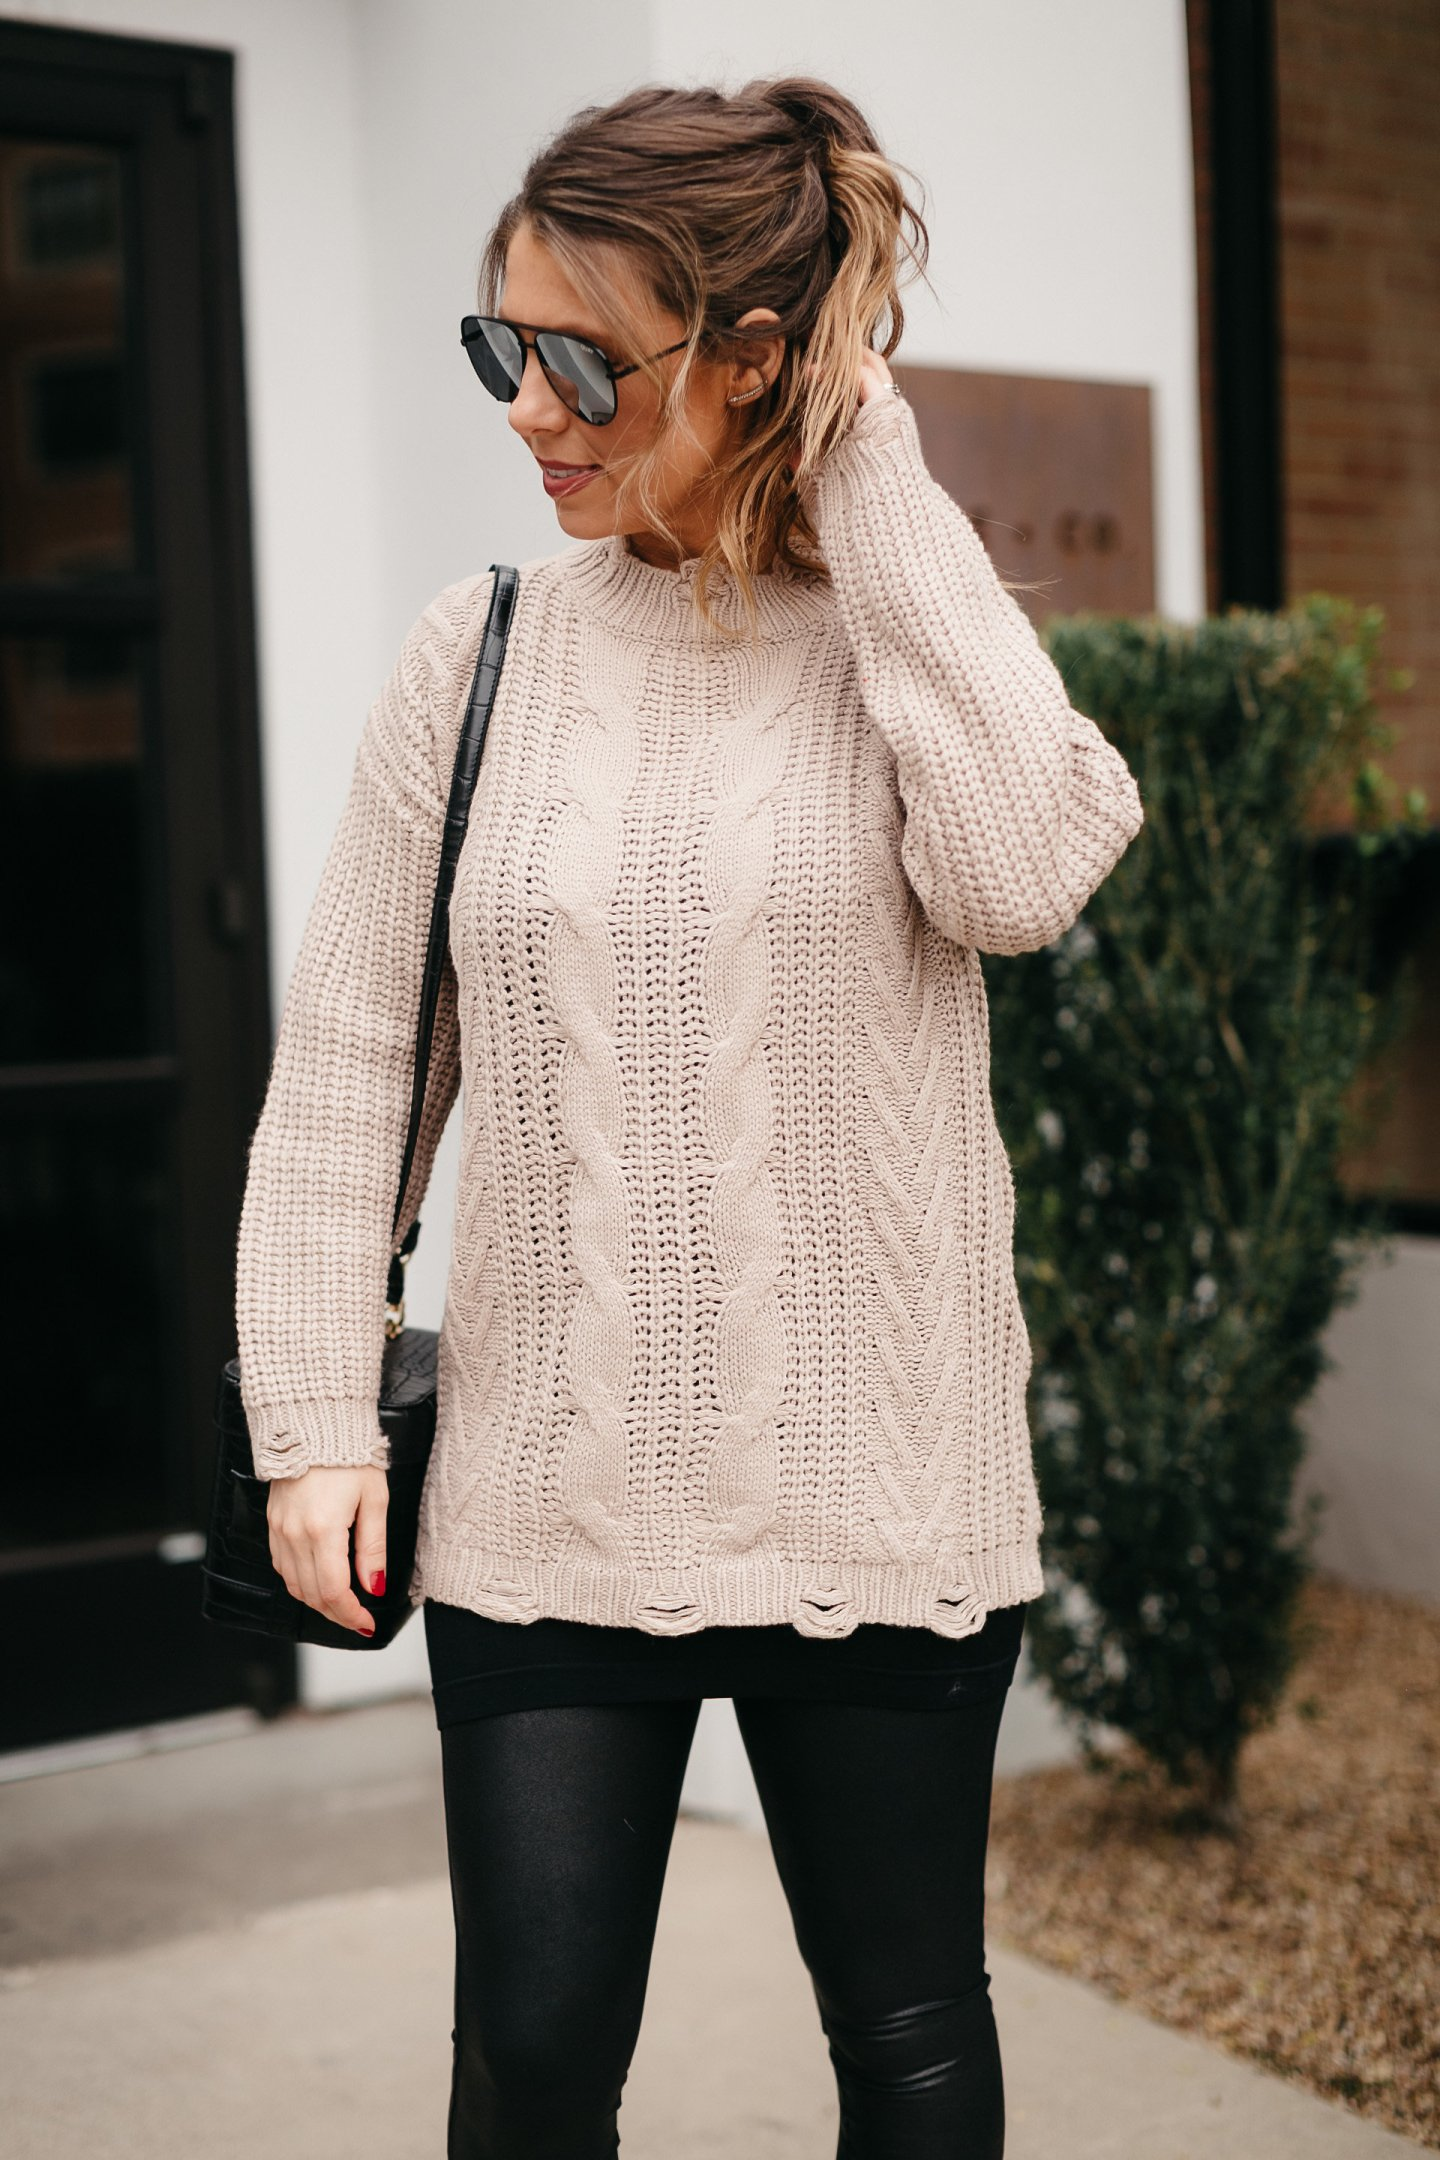 oversized sweater with black tassel earrings